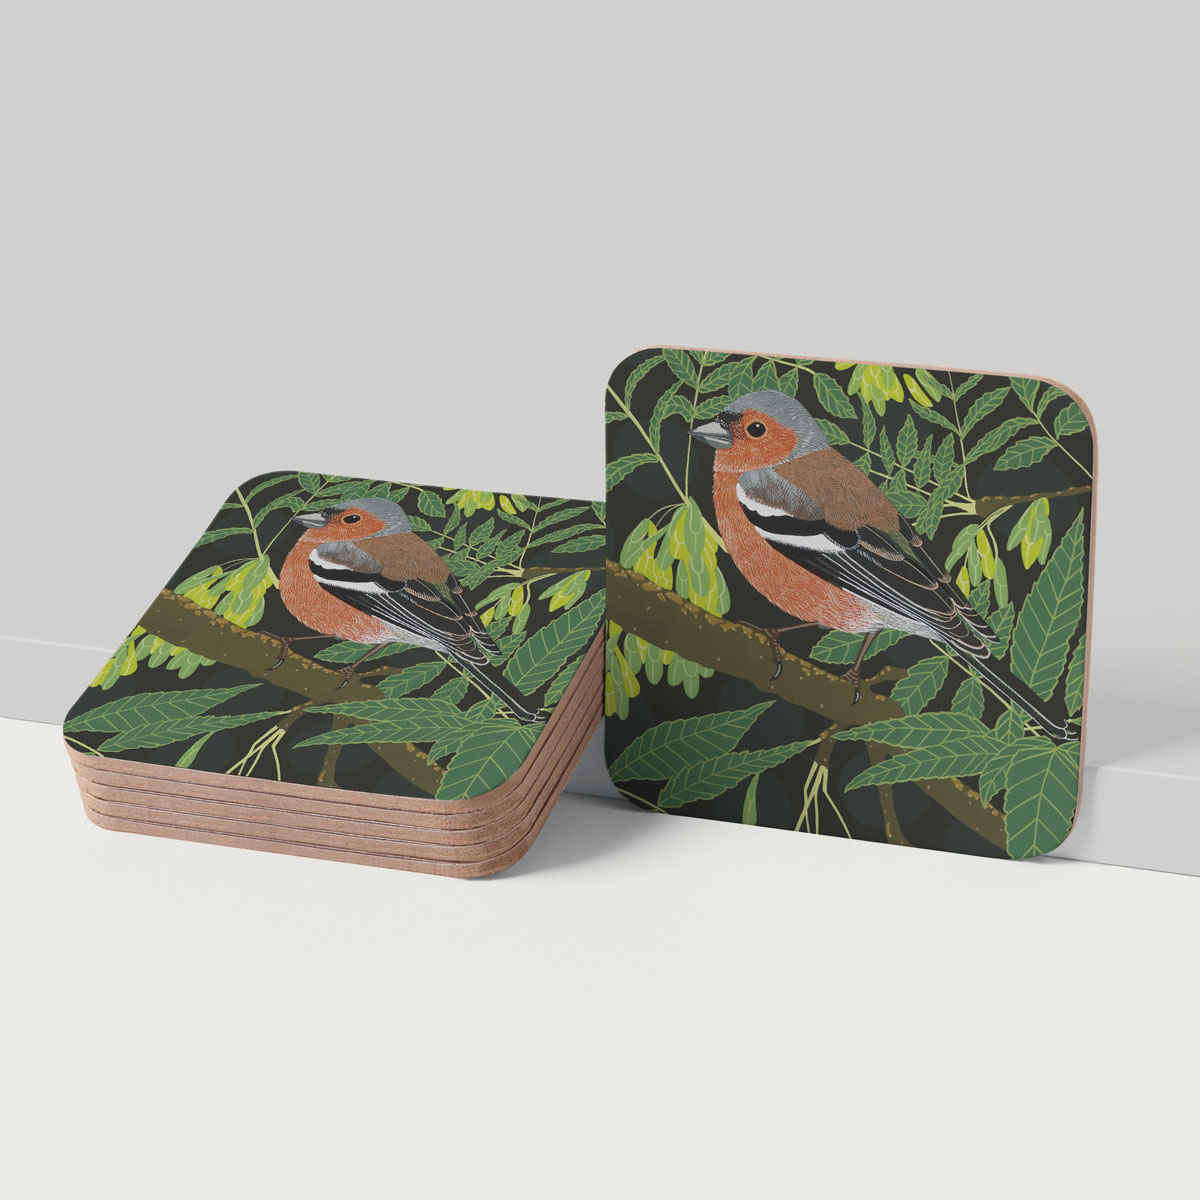 Chaffinch Bird Placemat And Coaster Tableware